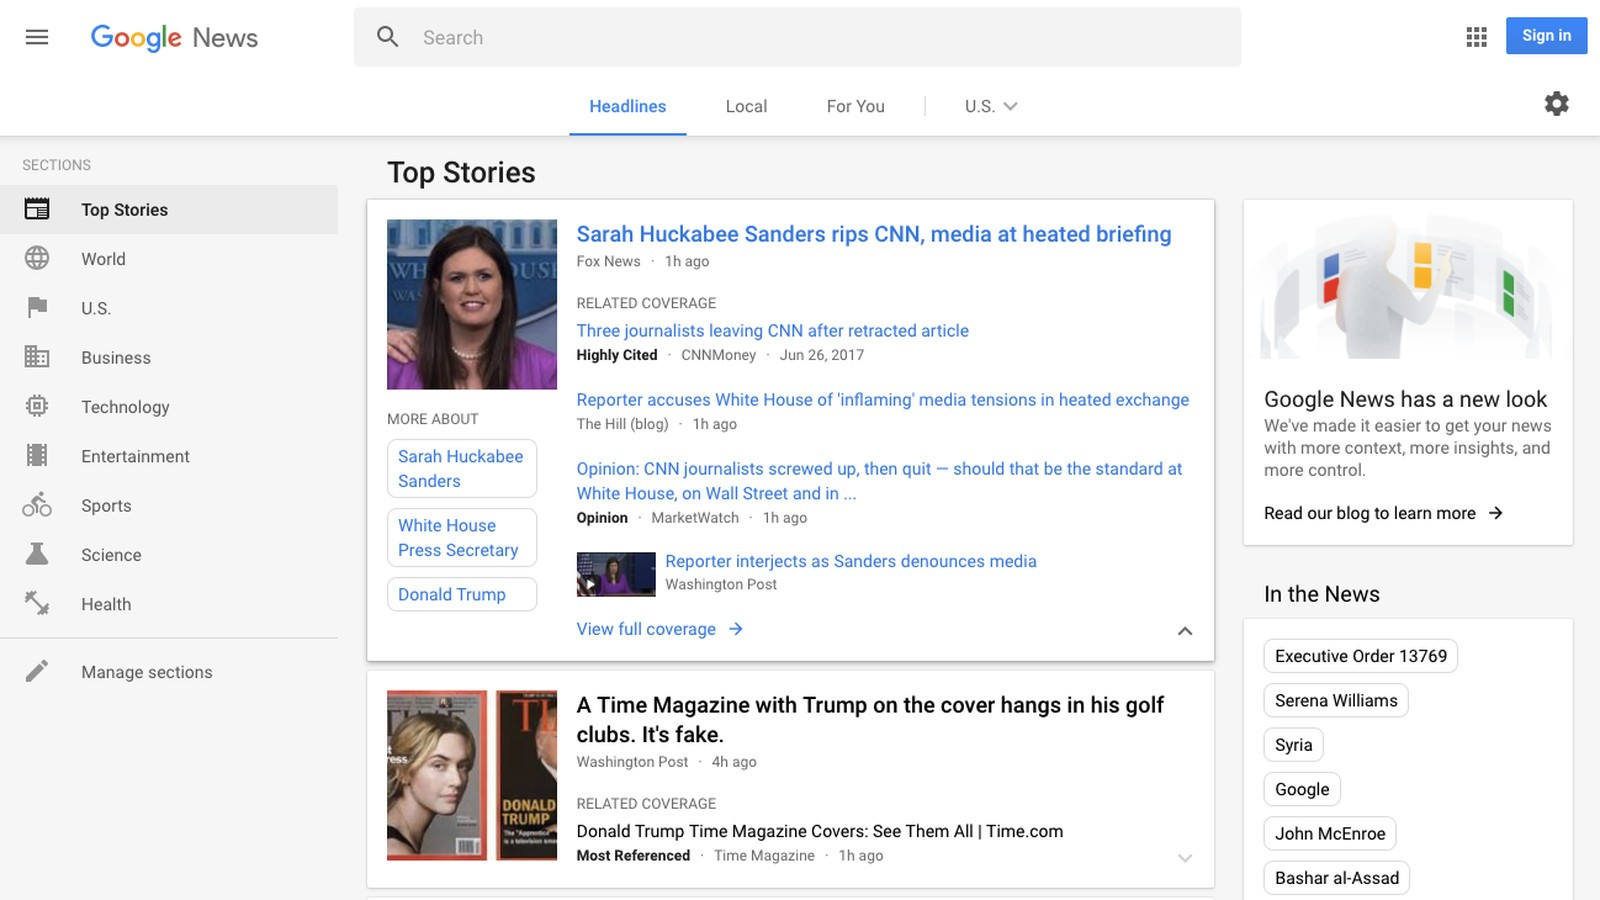 Learn How to Stay Up to Date with News from the Google News App